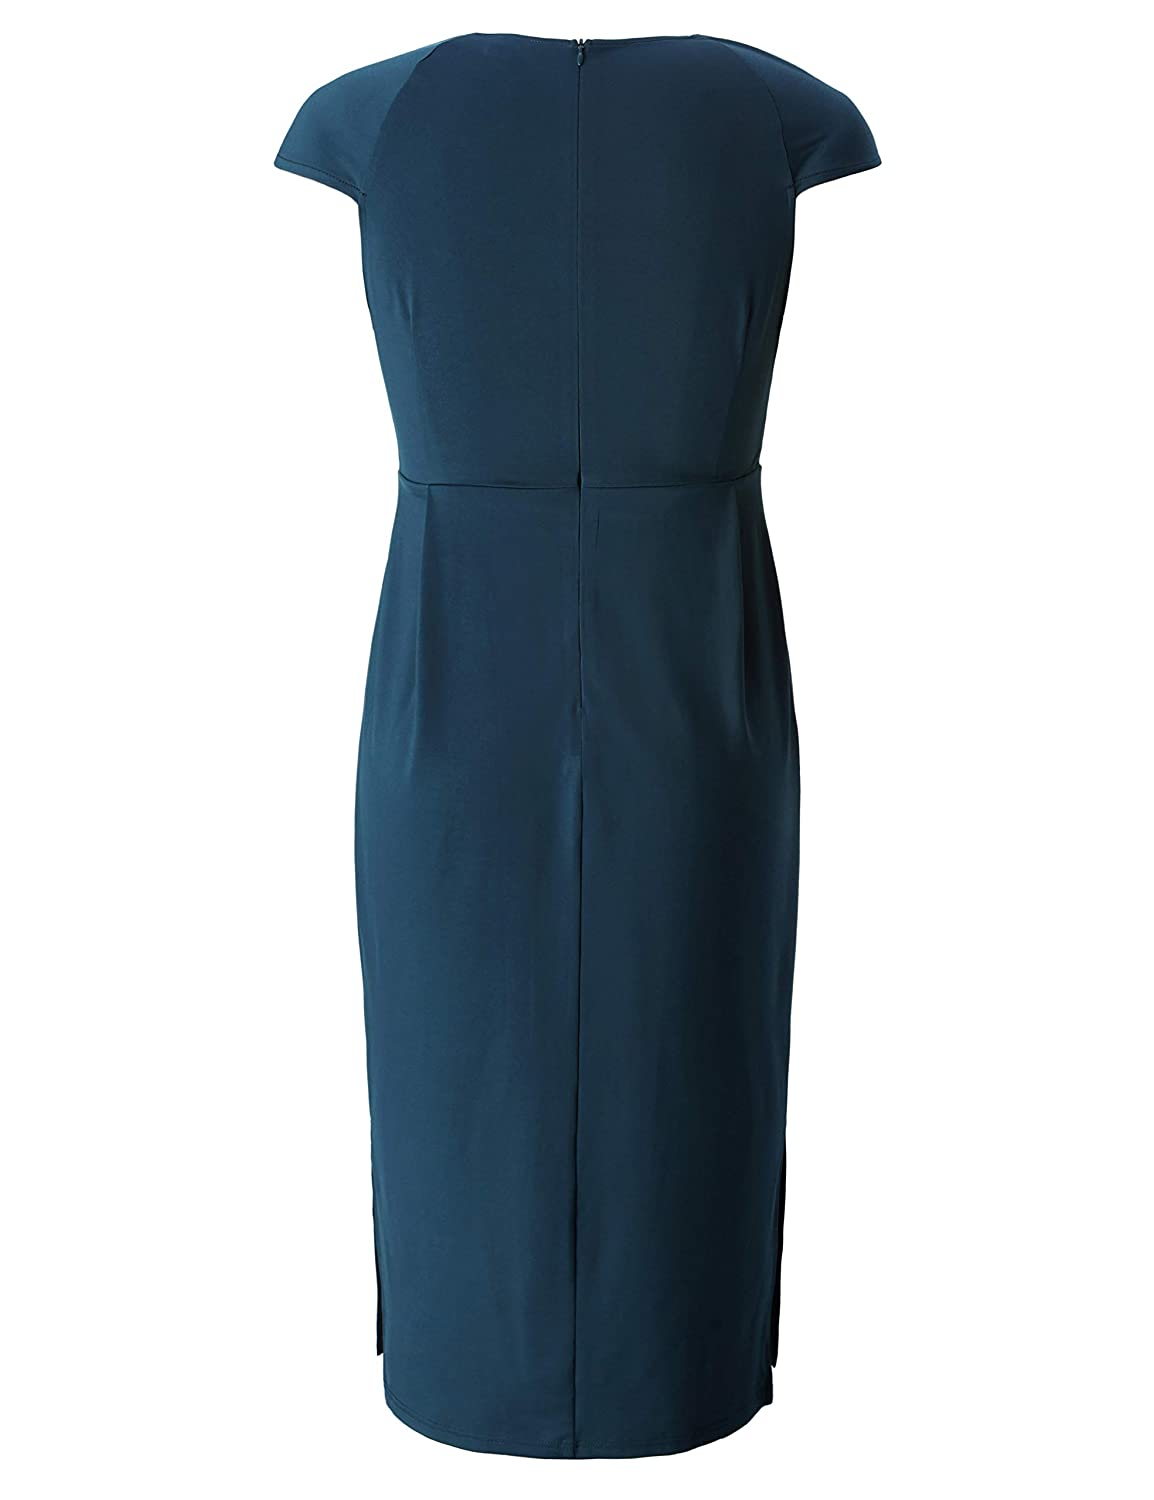 Casual Dress with Side Splits Calf Length Chicwe Womens Plus Size Designed Square Neck Dress